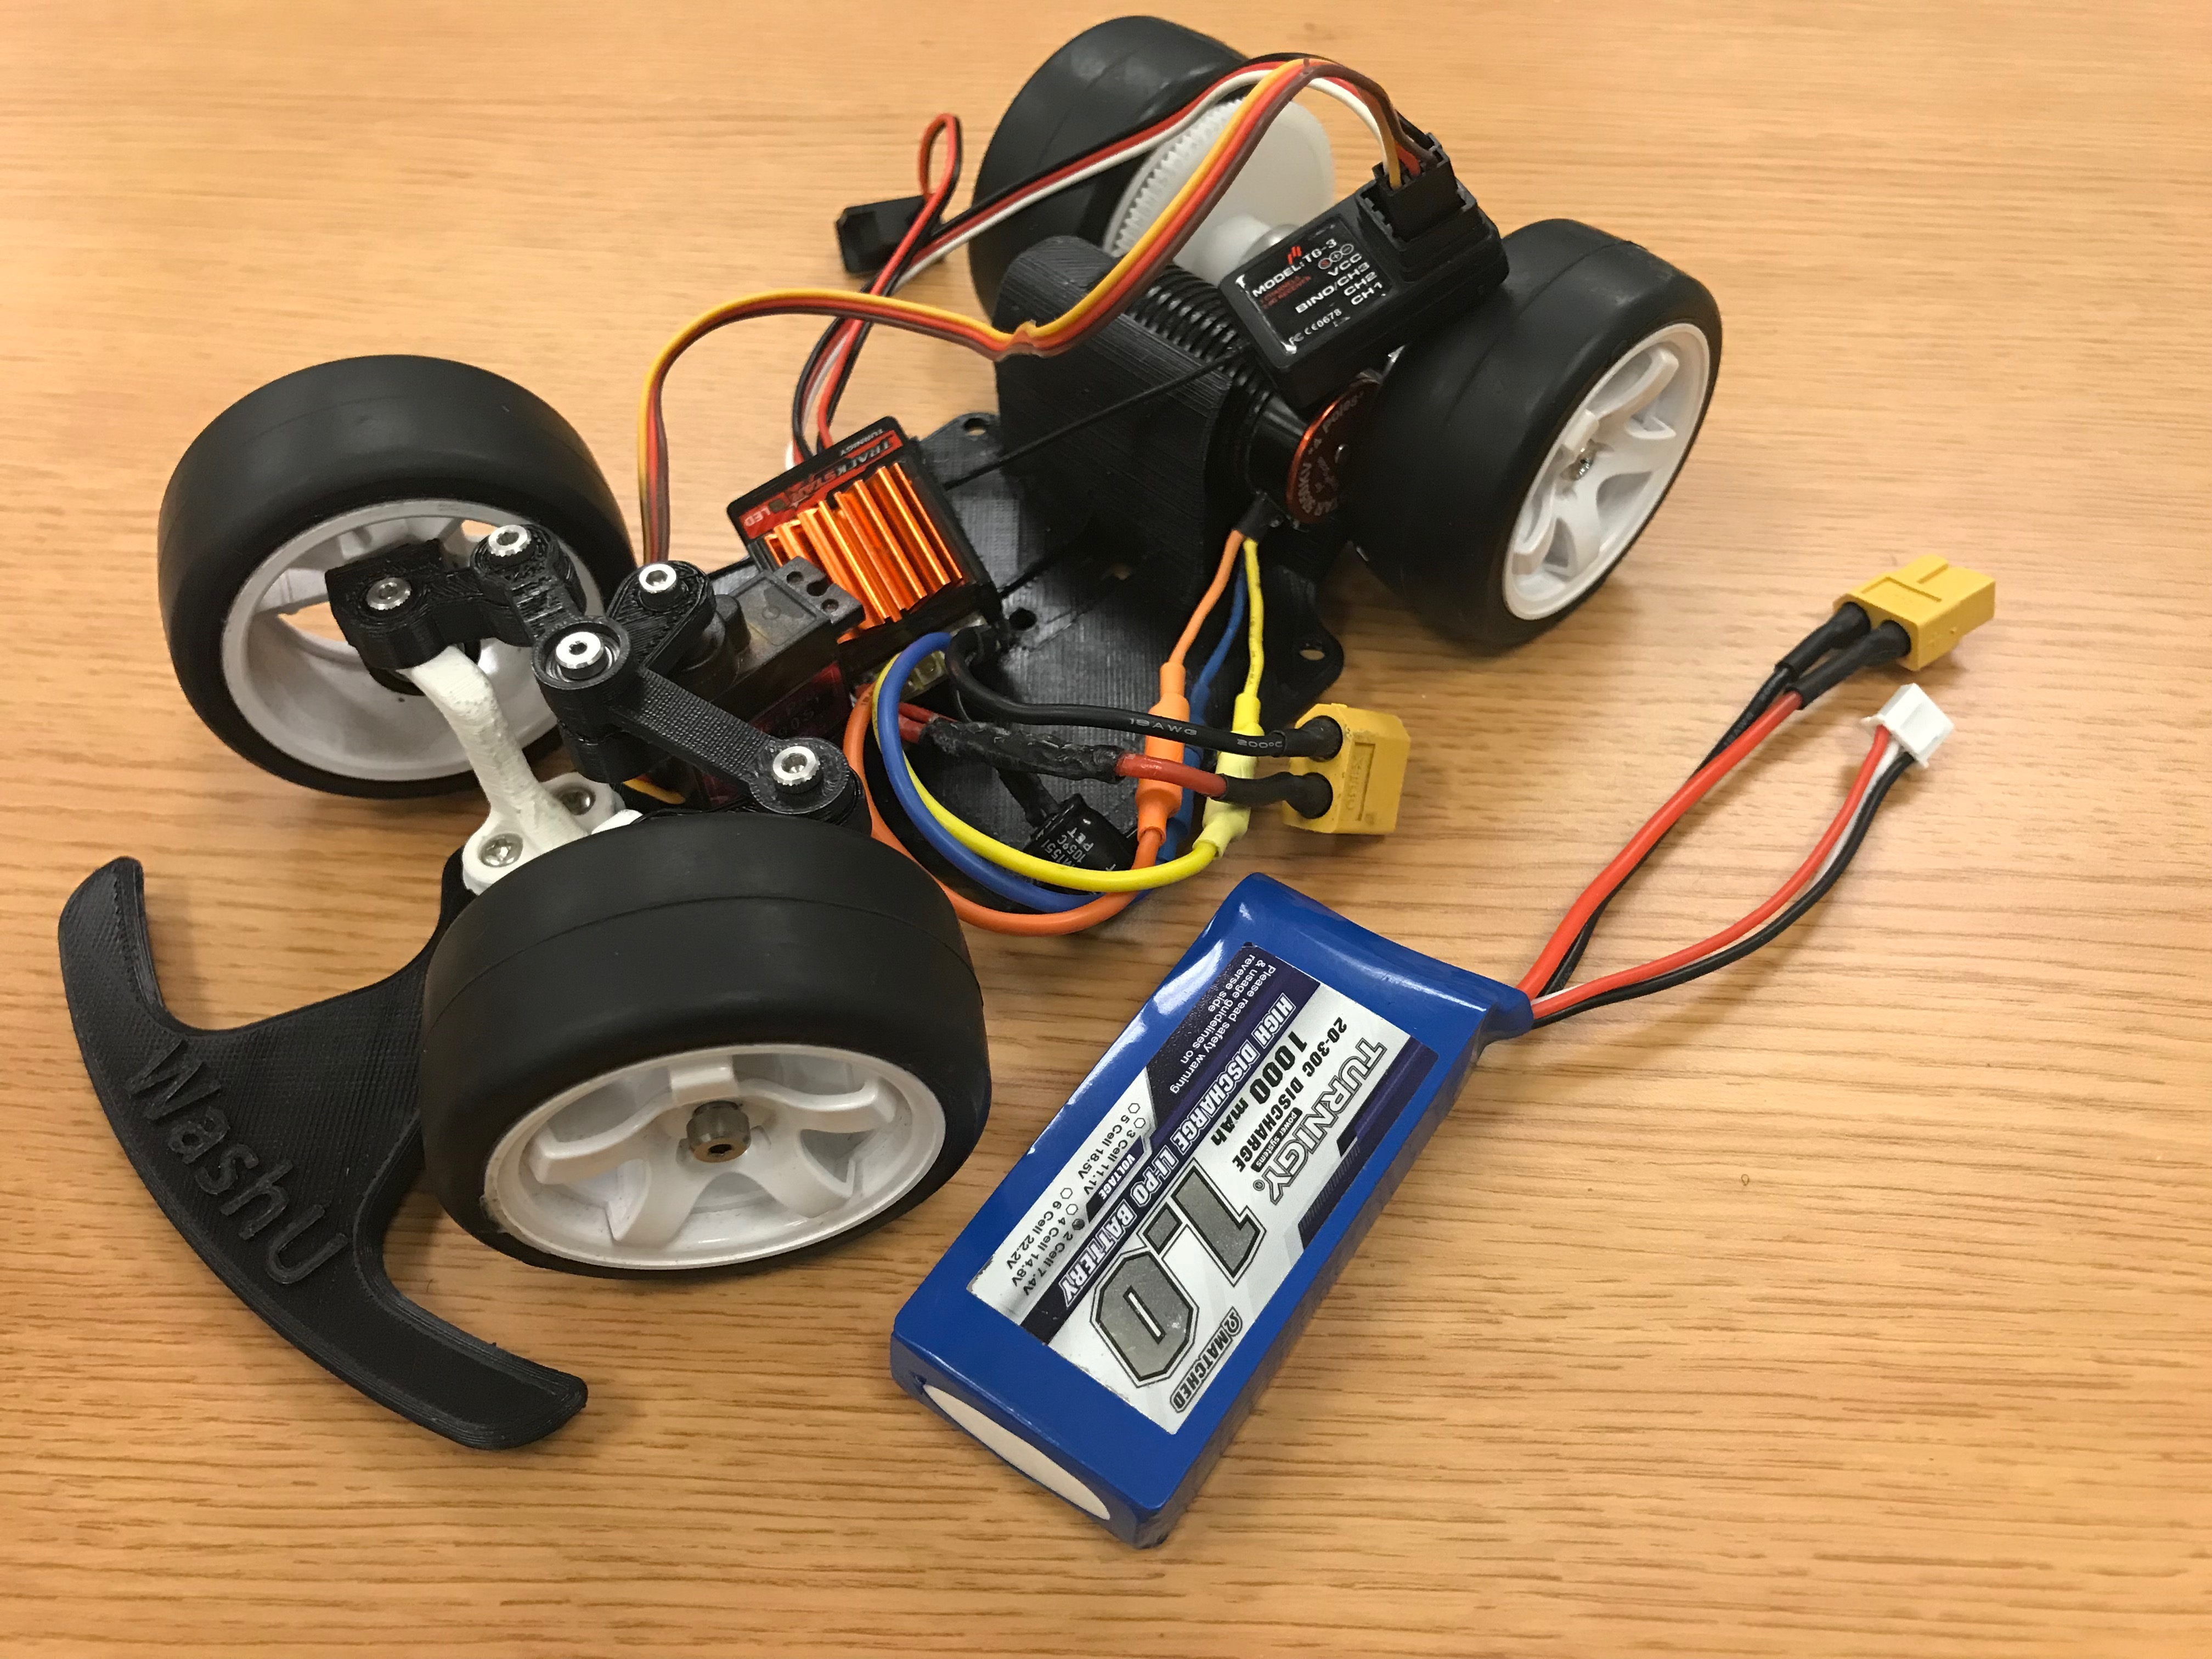 Picture of Power Everything With the LiPo Battery, and Test With RC Controller